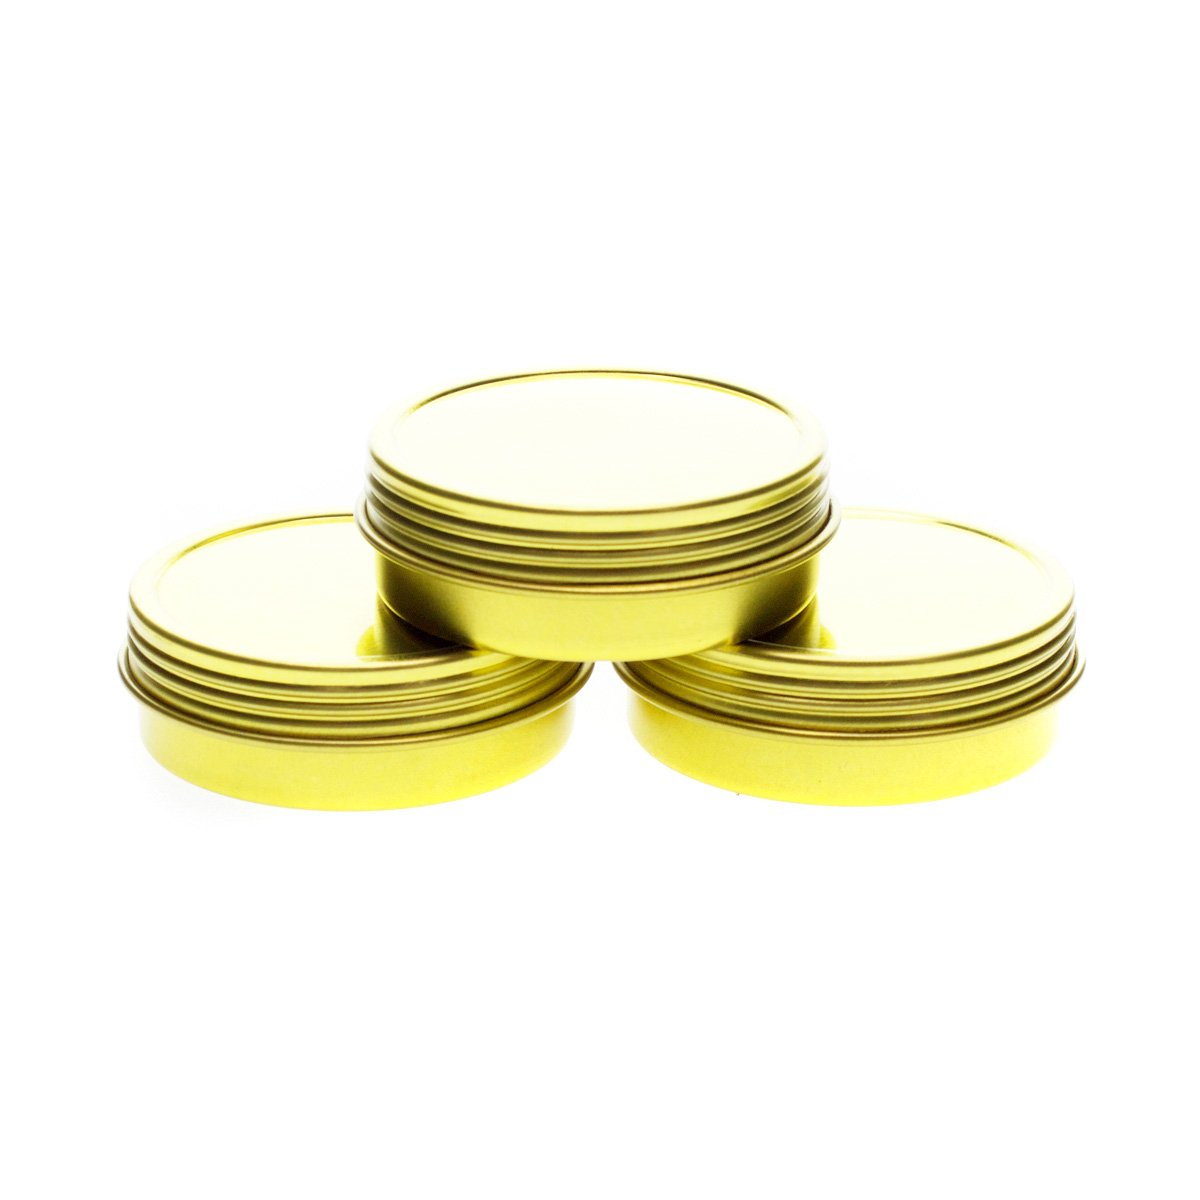 Mimi Pack 1 oz Shallow Screw Top Lid Round Metal Tins For Favors, Spices, Balms, Gels, Candles, Gifts, Storage Tin Container 24 Pack (Gold)